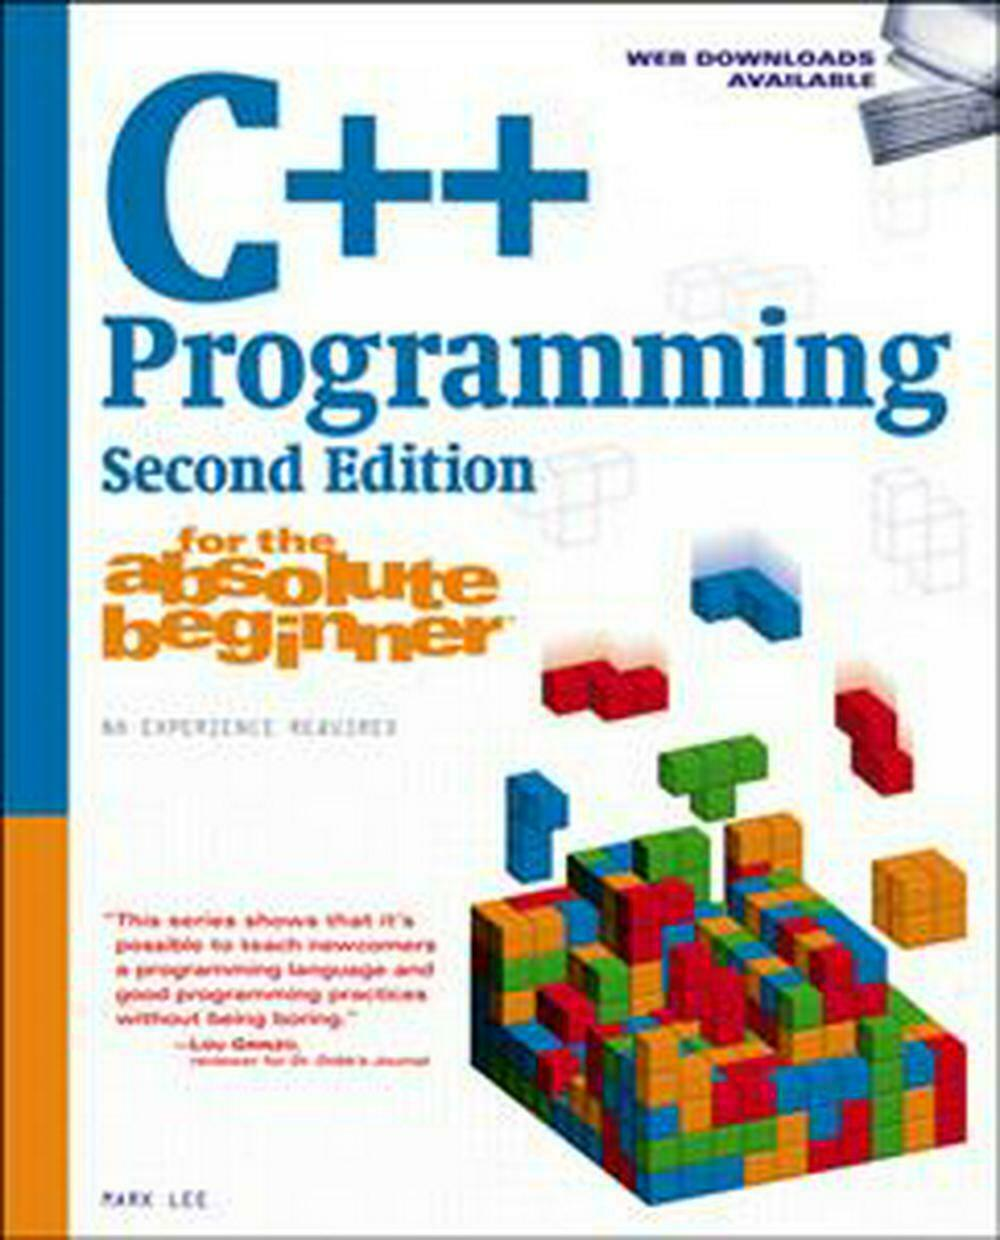 C++ Programming for the Absolute Beginner by Mark Lee (English) Paperback Book F |